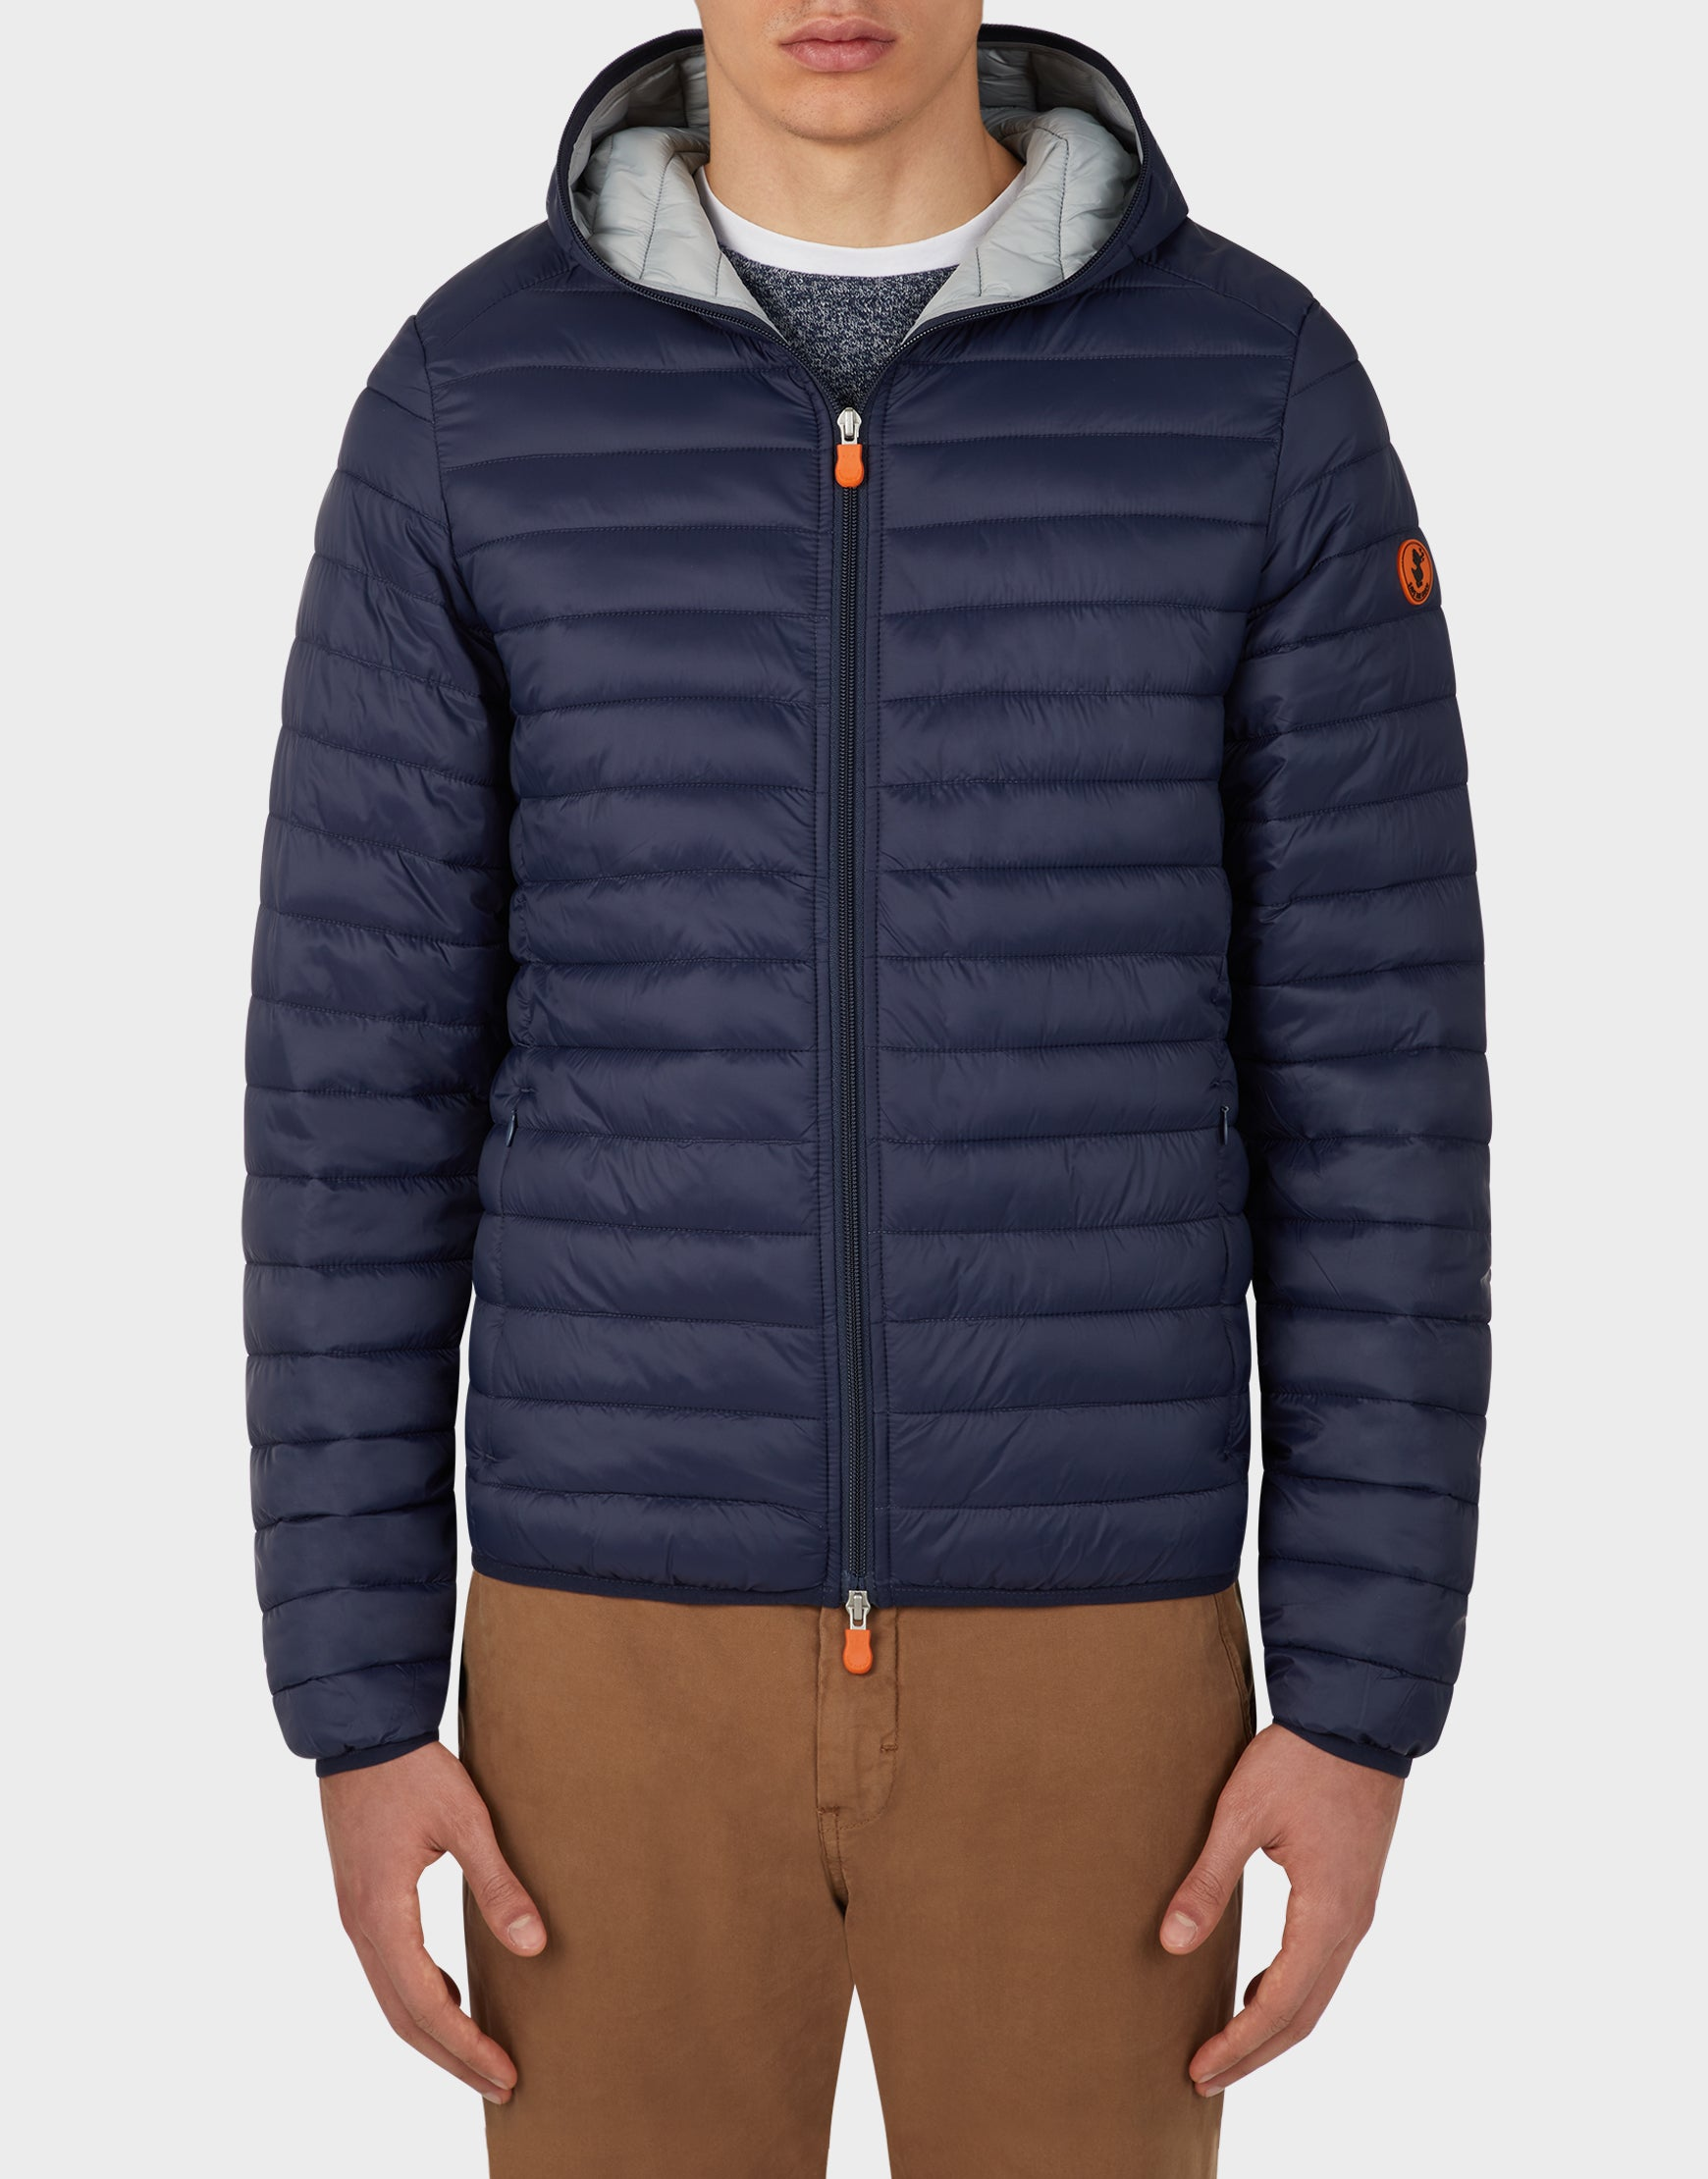 Mens GIGA Puffer Hooded Jacket in Navy Blue